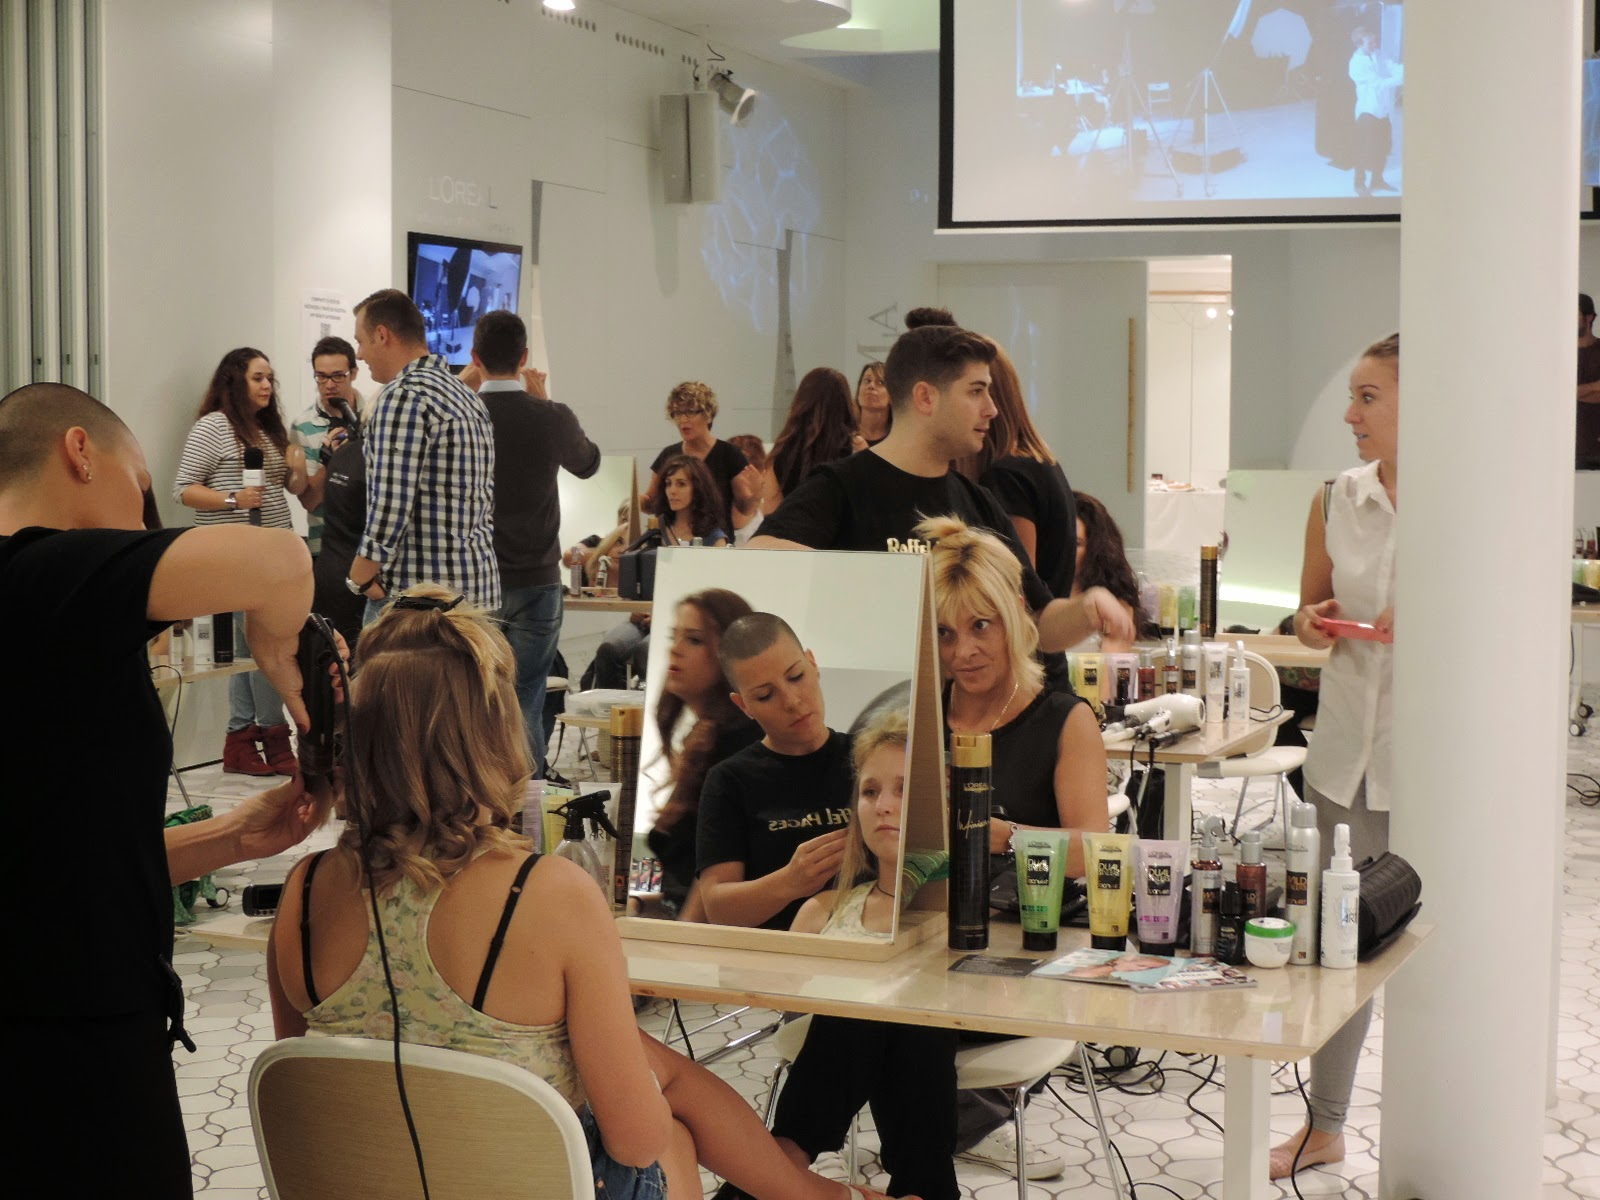 Beauty Afterwork con L'Oreal y Enfemenino.com